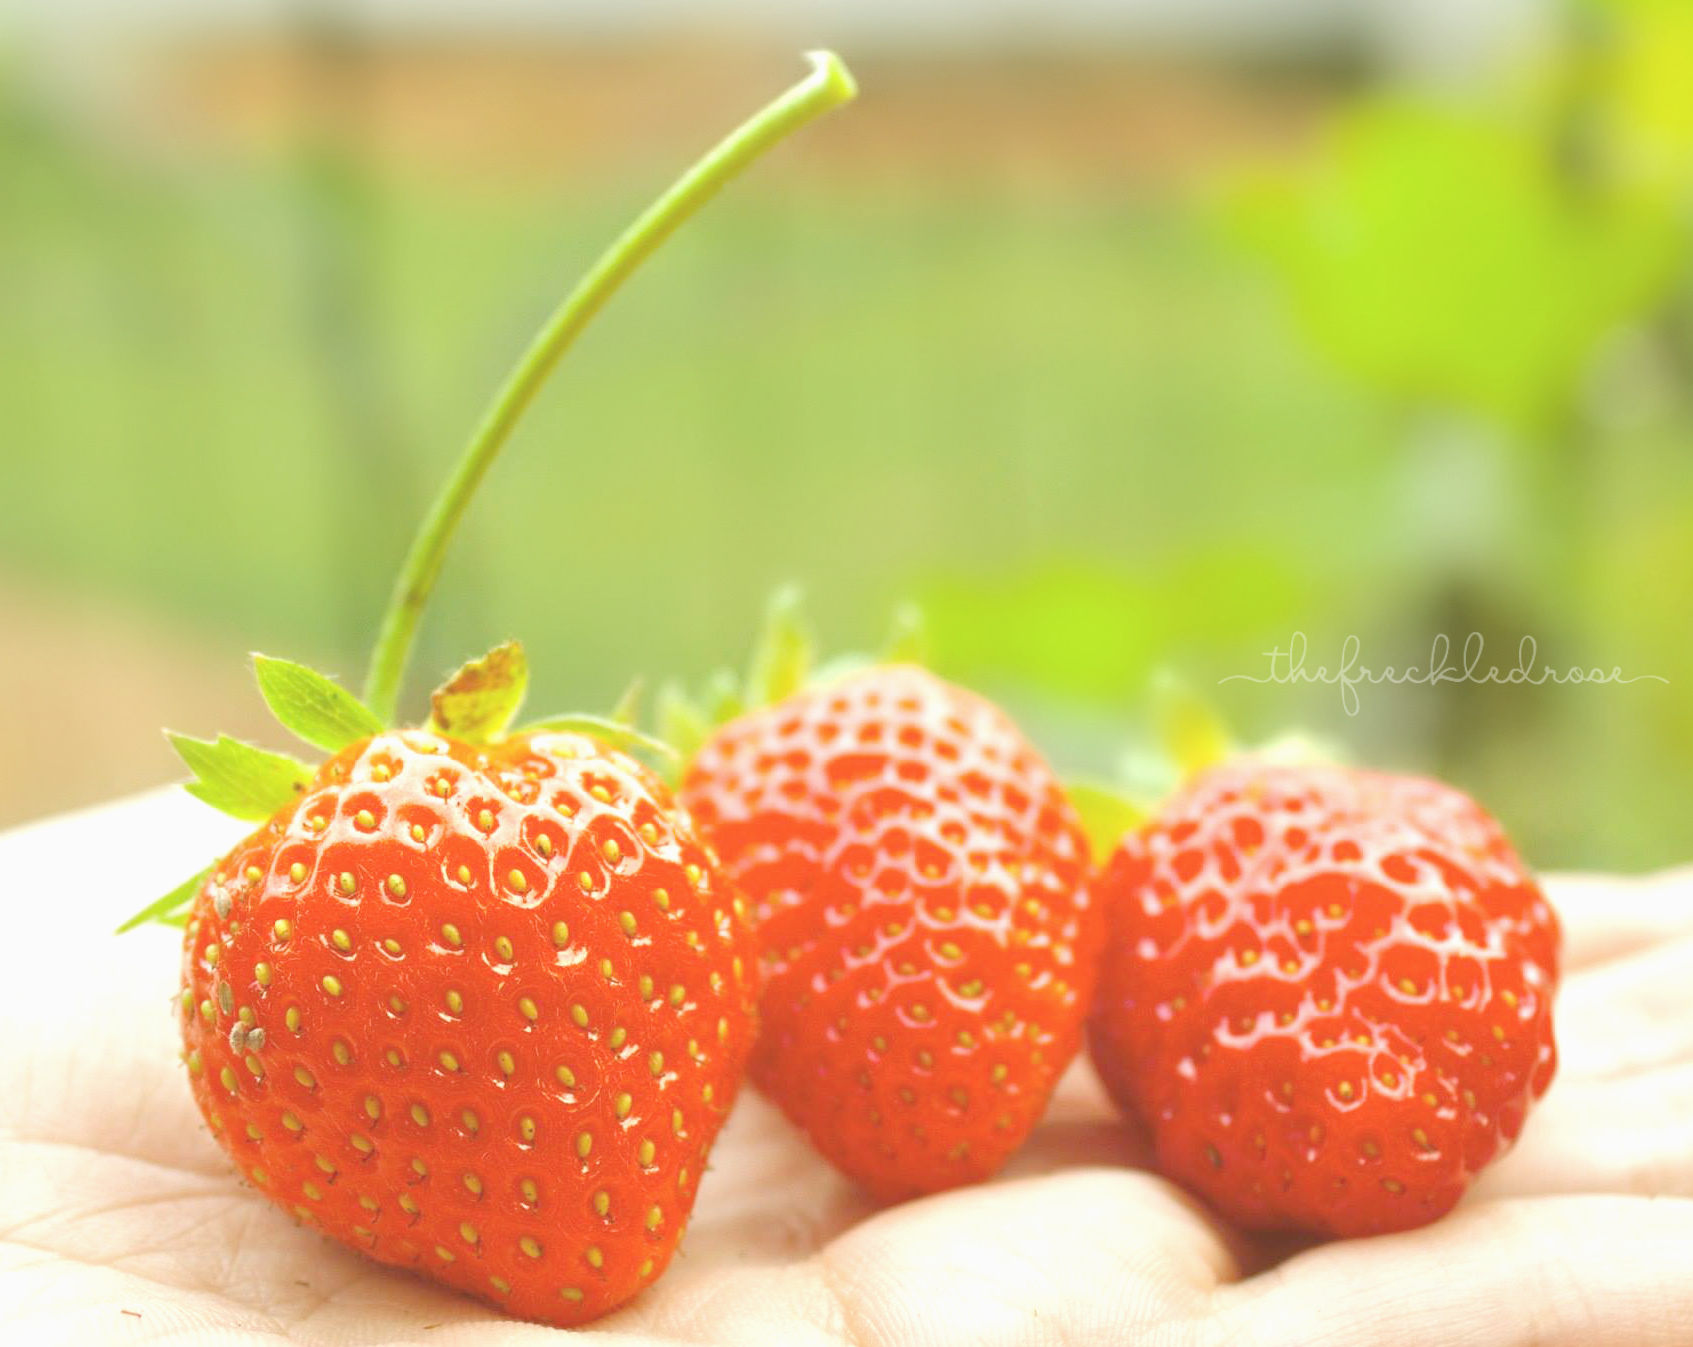 Once you learn to grow your berries, you can harvest them and make a bunch of delicious confections and treats. Chocolate covered strawberries, strawberry lemonade, strawberry shortcake, berry jam, fruit tarts and the list just goes on! Here, I will be sharing with you a simple guide to growing strawberries. Read on to learn more! A Simple Guide To Growing Strawberries | Angie The Freckled Rose